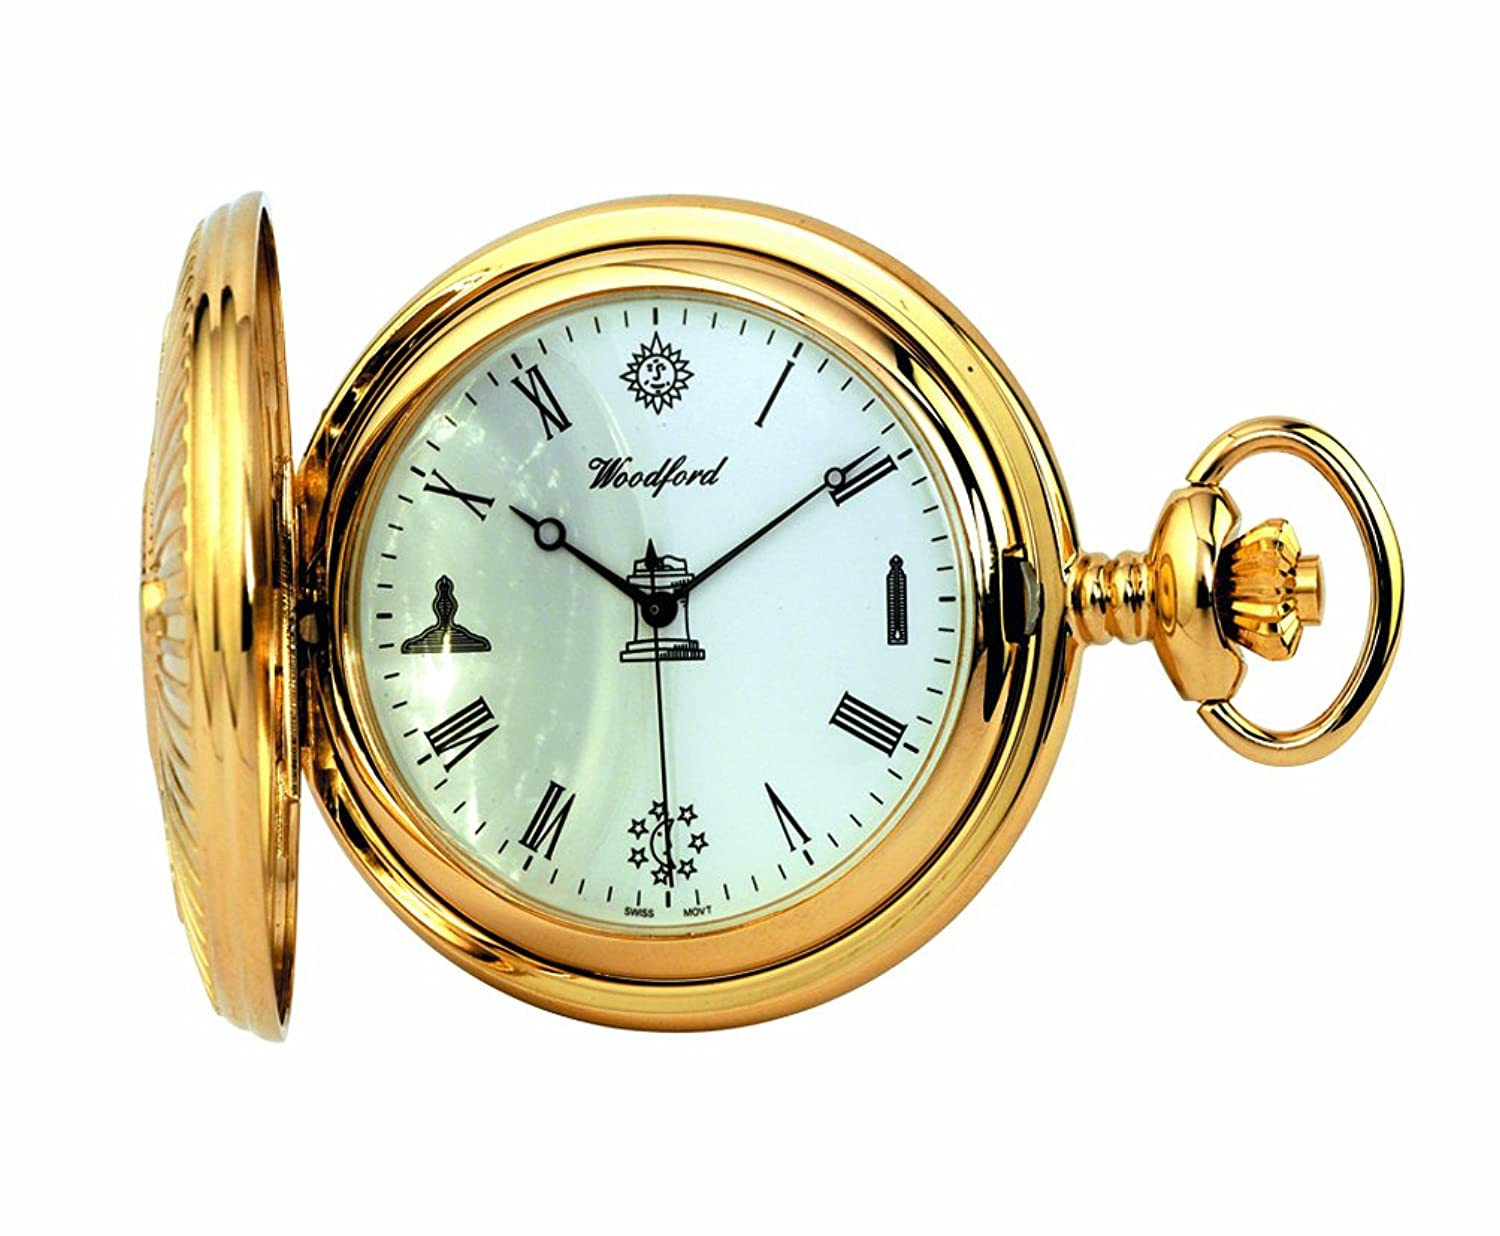 pocket watch png woodford quartz fullhunter pocket watch menu0027s goldplated masonic pattern with chain amazoncouk watches png